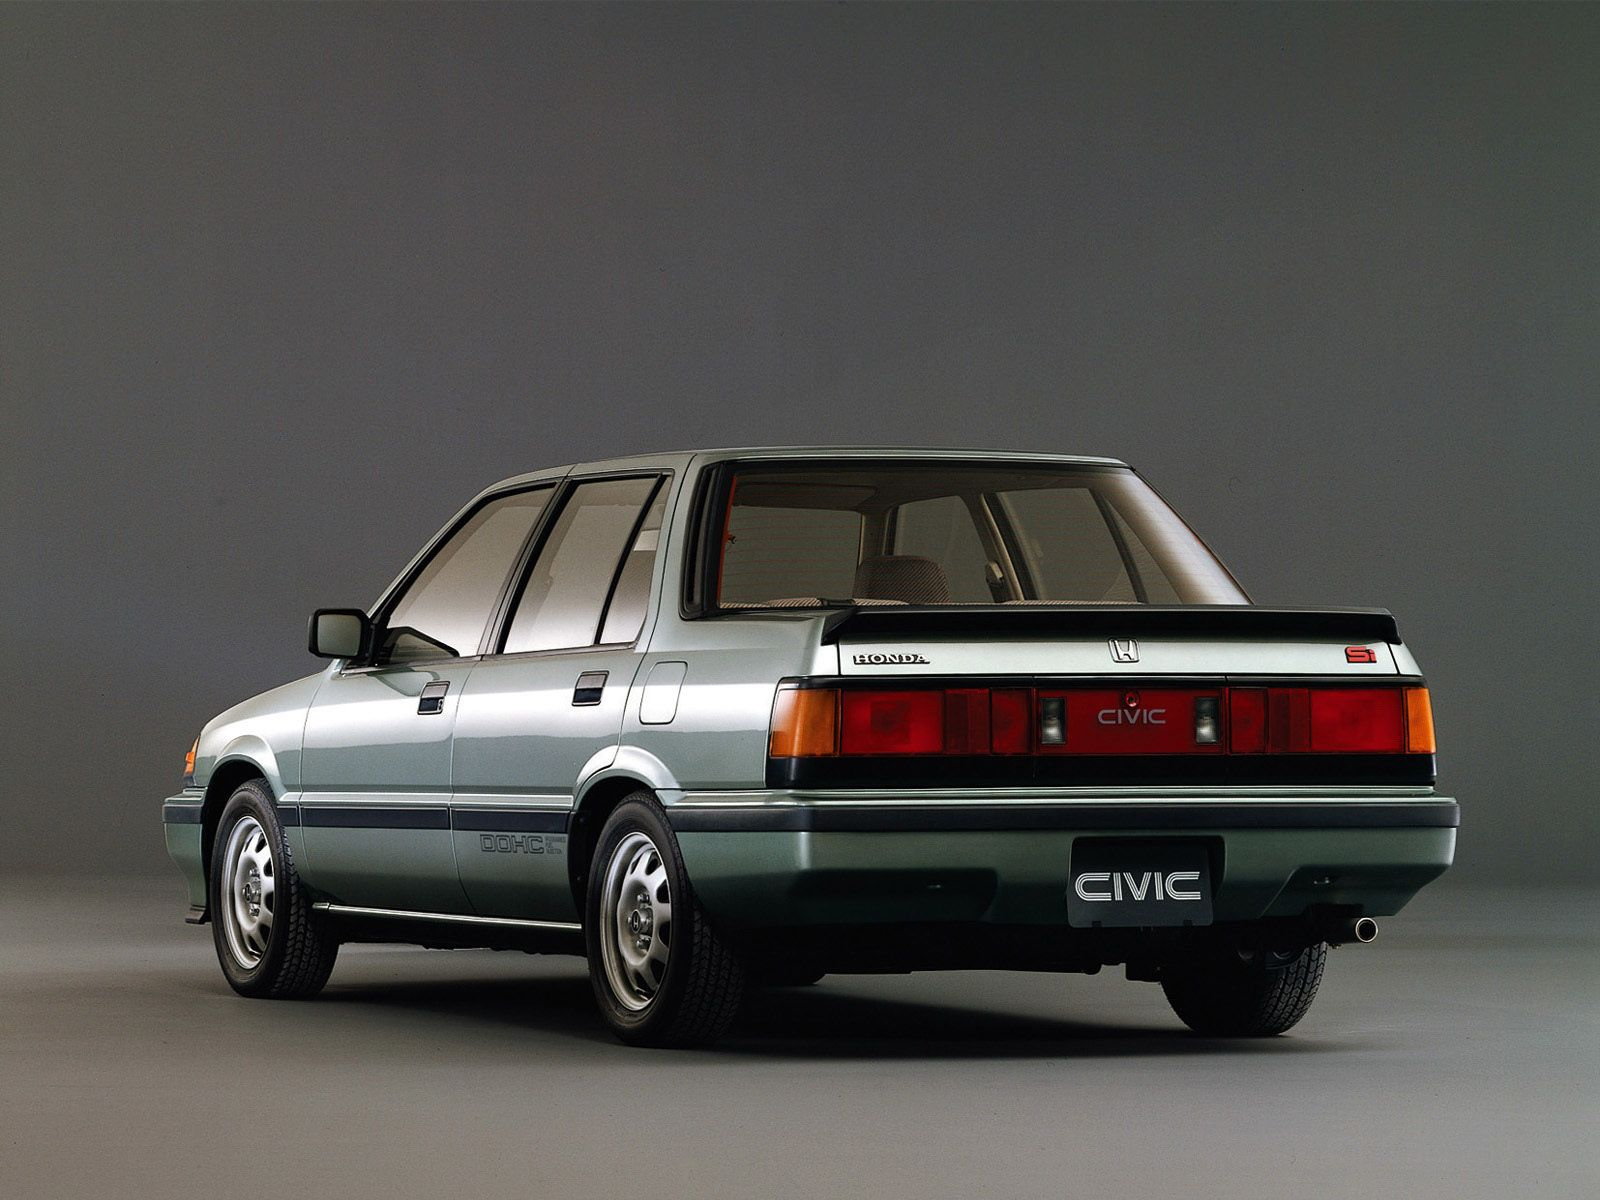 Civic Classic Sedan Black Olx: 1985 Honda Civic Si Sedan - Awesome!